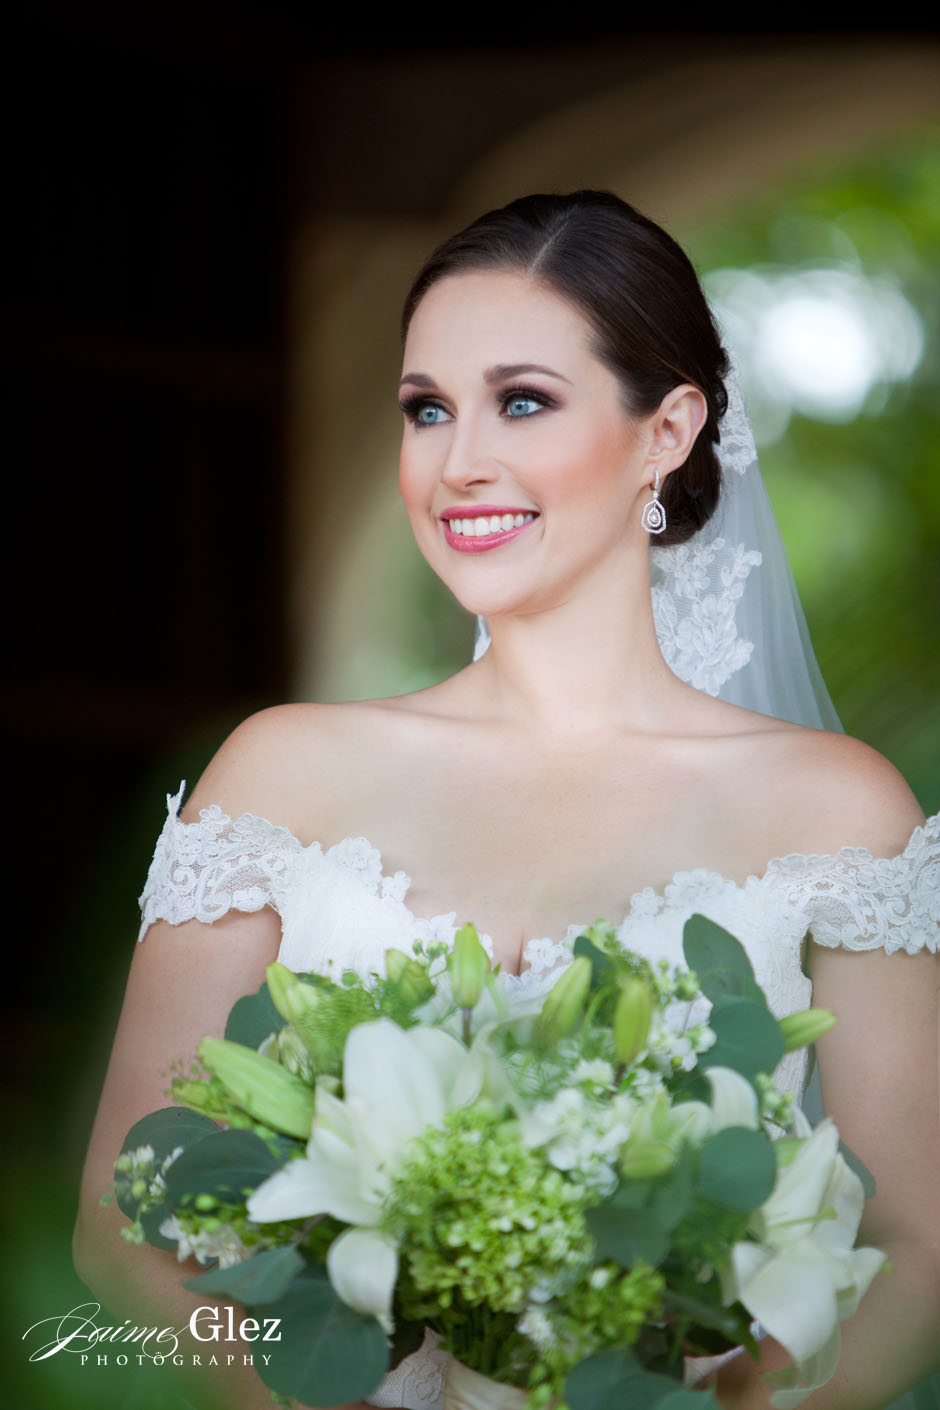 Gorgeous bride looking simply stunning!